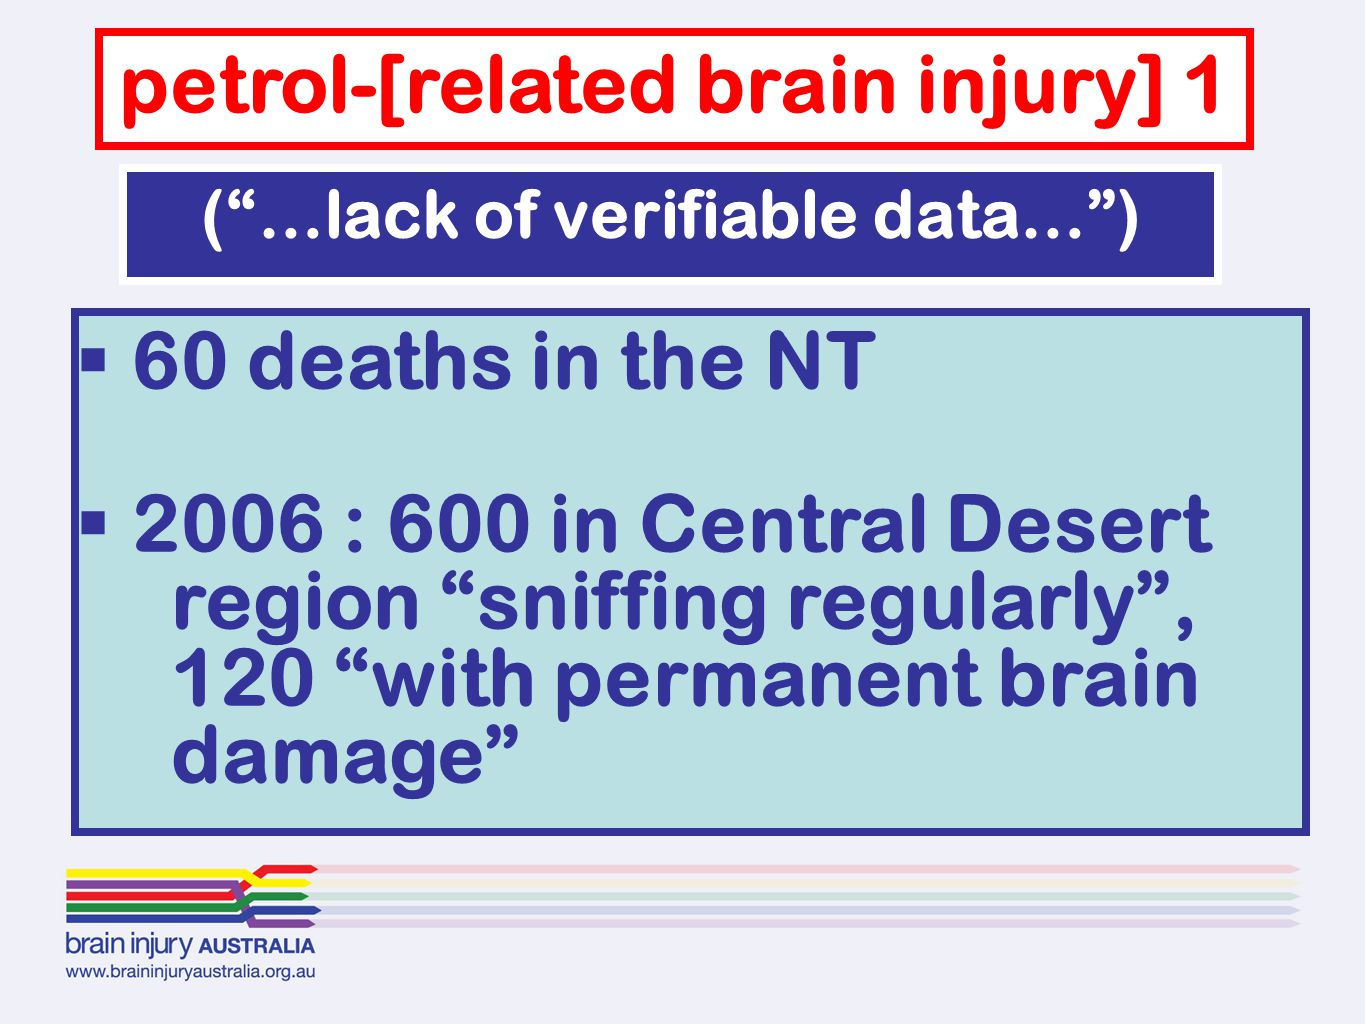  60 deaths in the NT  2006 : 600 in Central Desert region sniffing regularly , 120 with permanent brain damage petrol-[related brain injury] 1 ( …lack of verifiable data… )